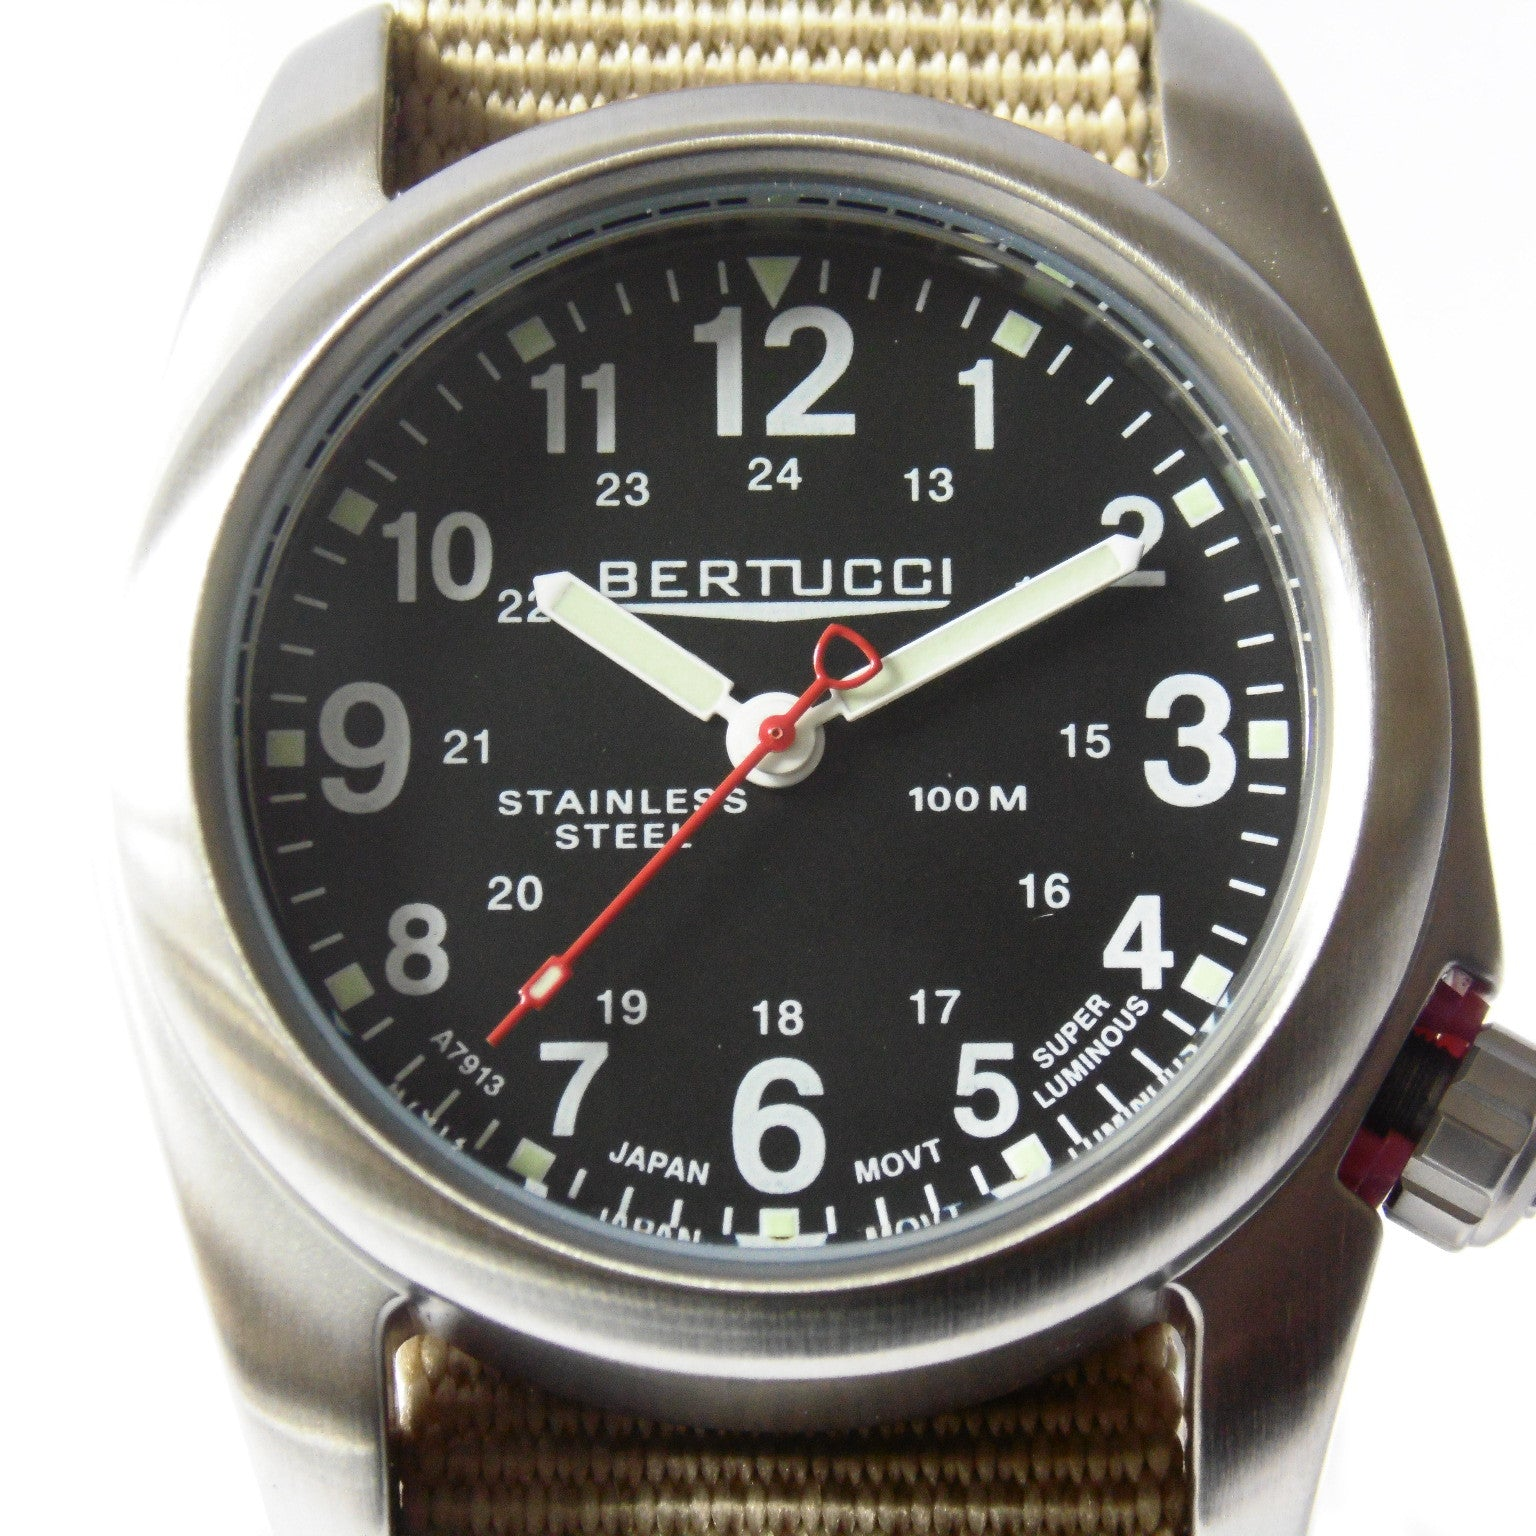 Bertucci 11052 A-2S Field Watch (Defender Khaki Strap) - Watchfinder General - UK suppliers of Russian Vostok Parnis Watches MWC G10  - 3